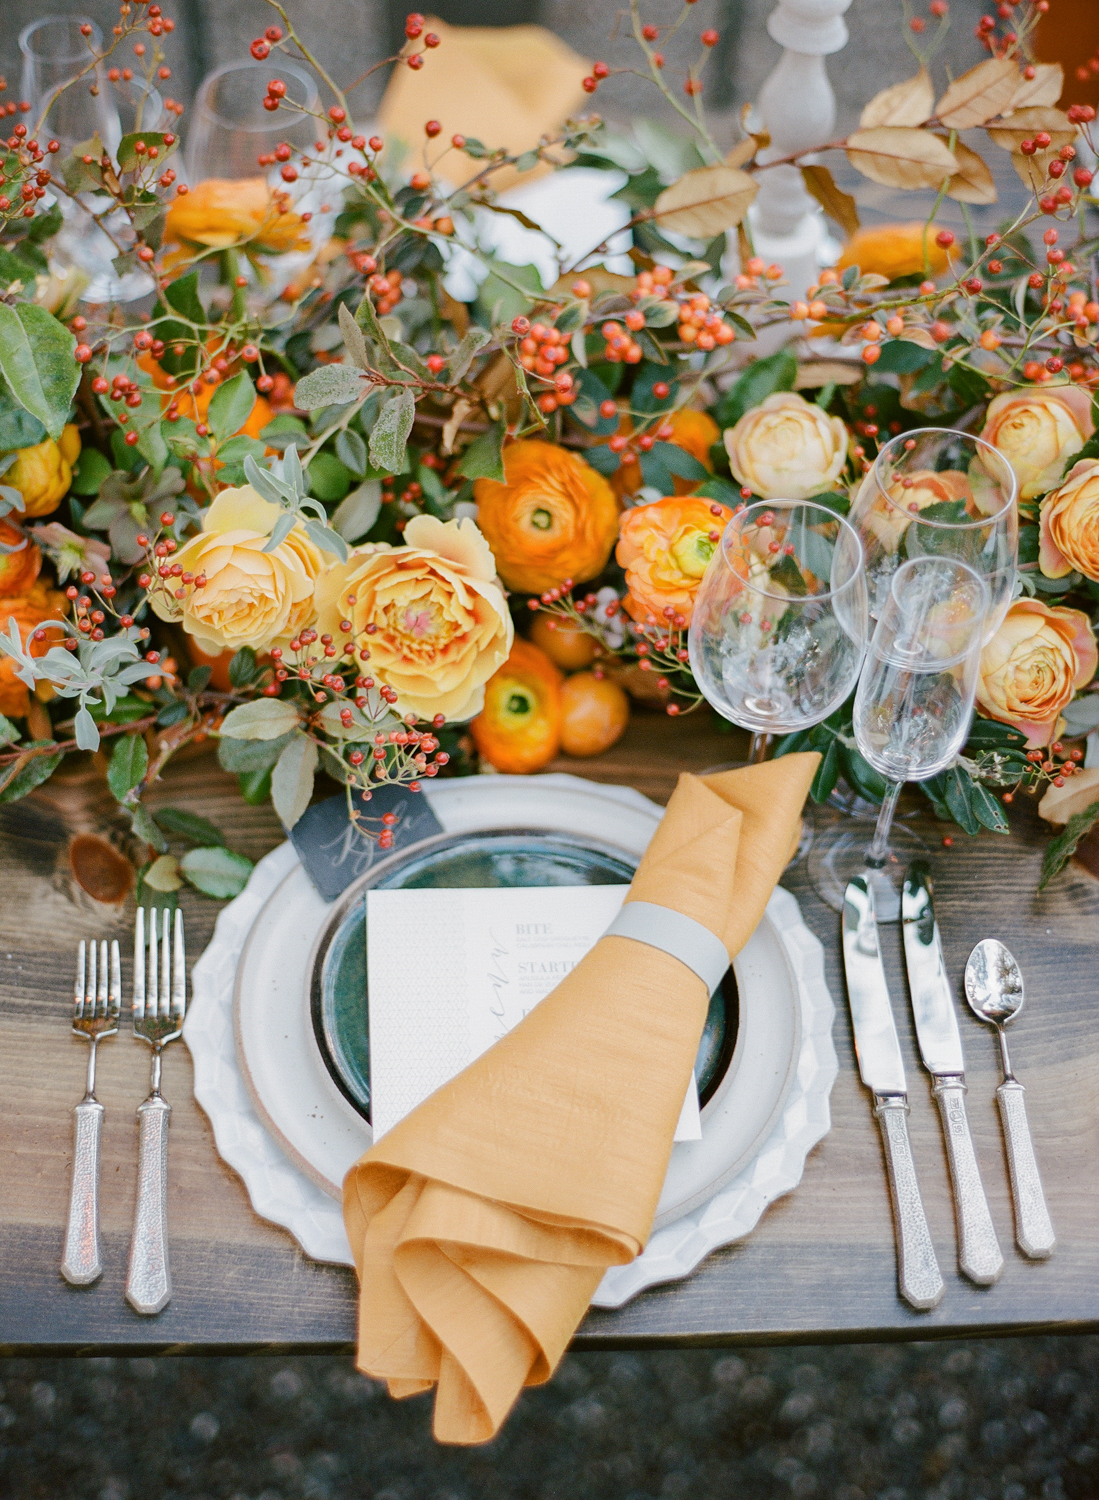 How to Plan a Fall Wedding Without Embracing the Typical Fall Foliage Look